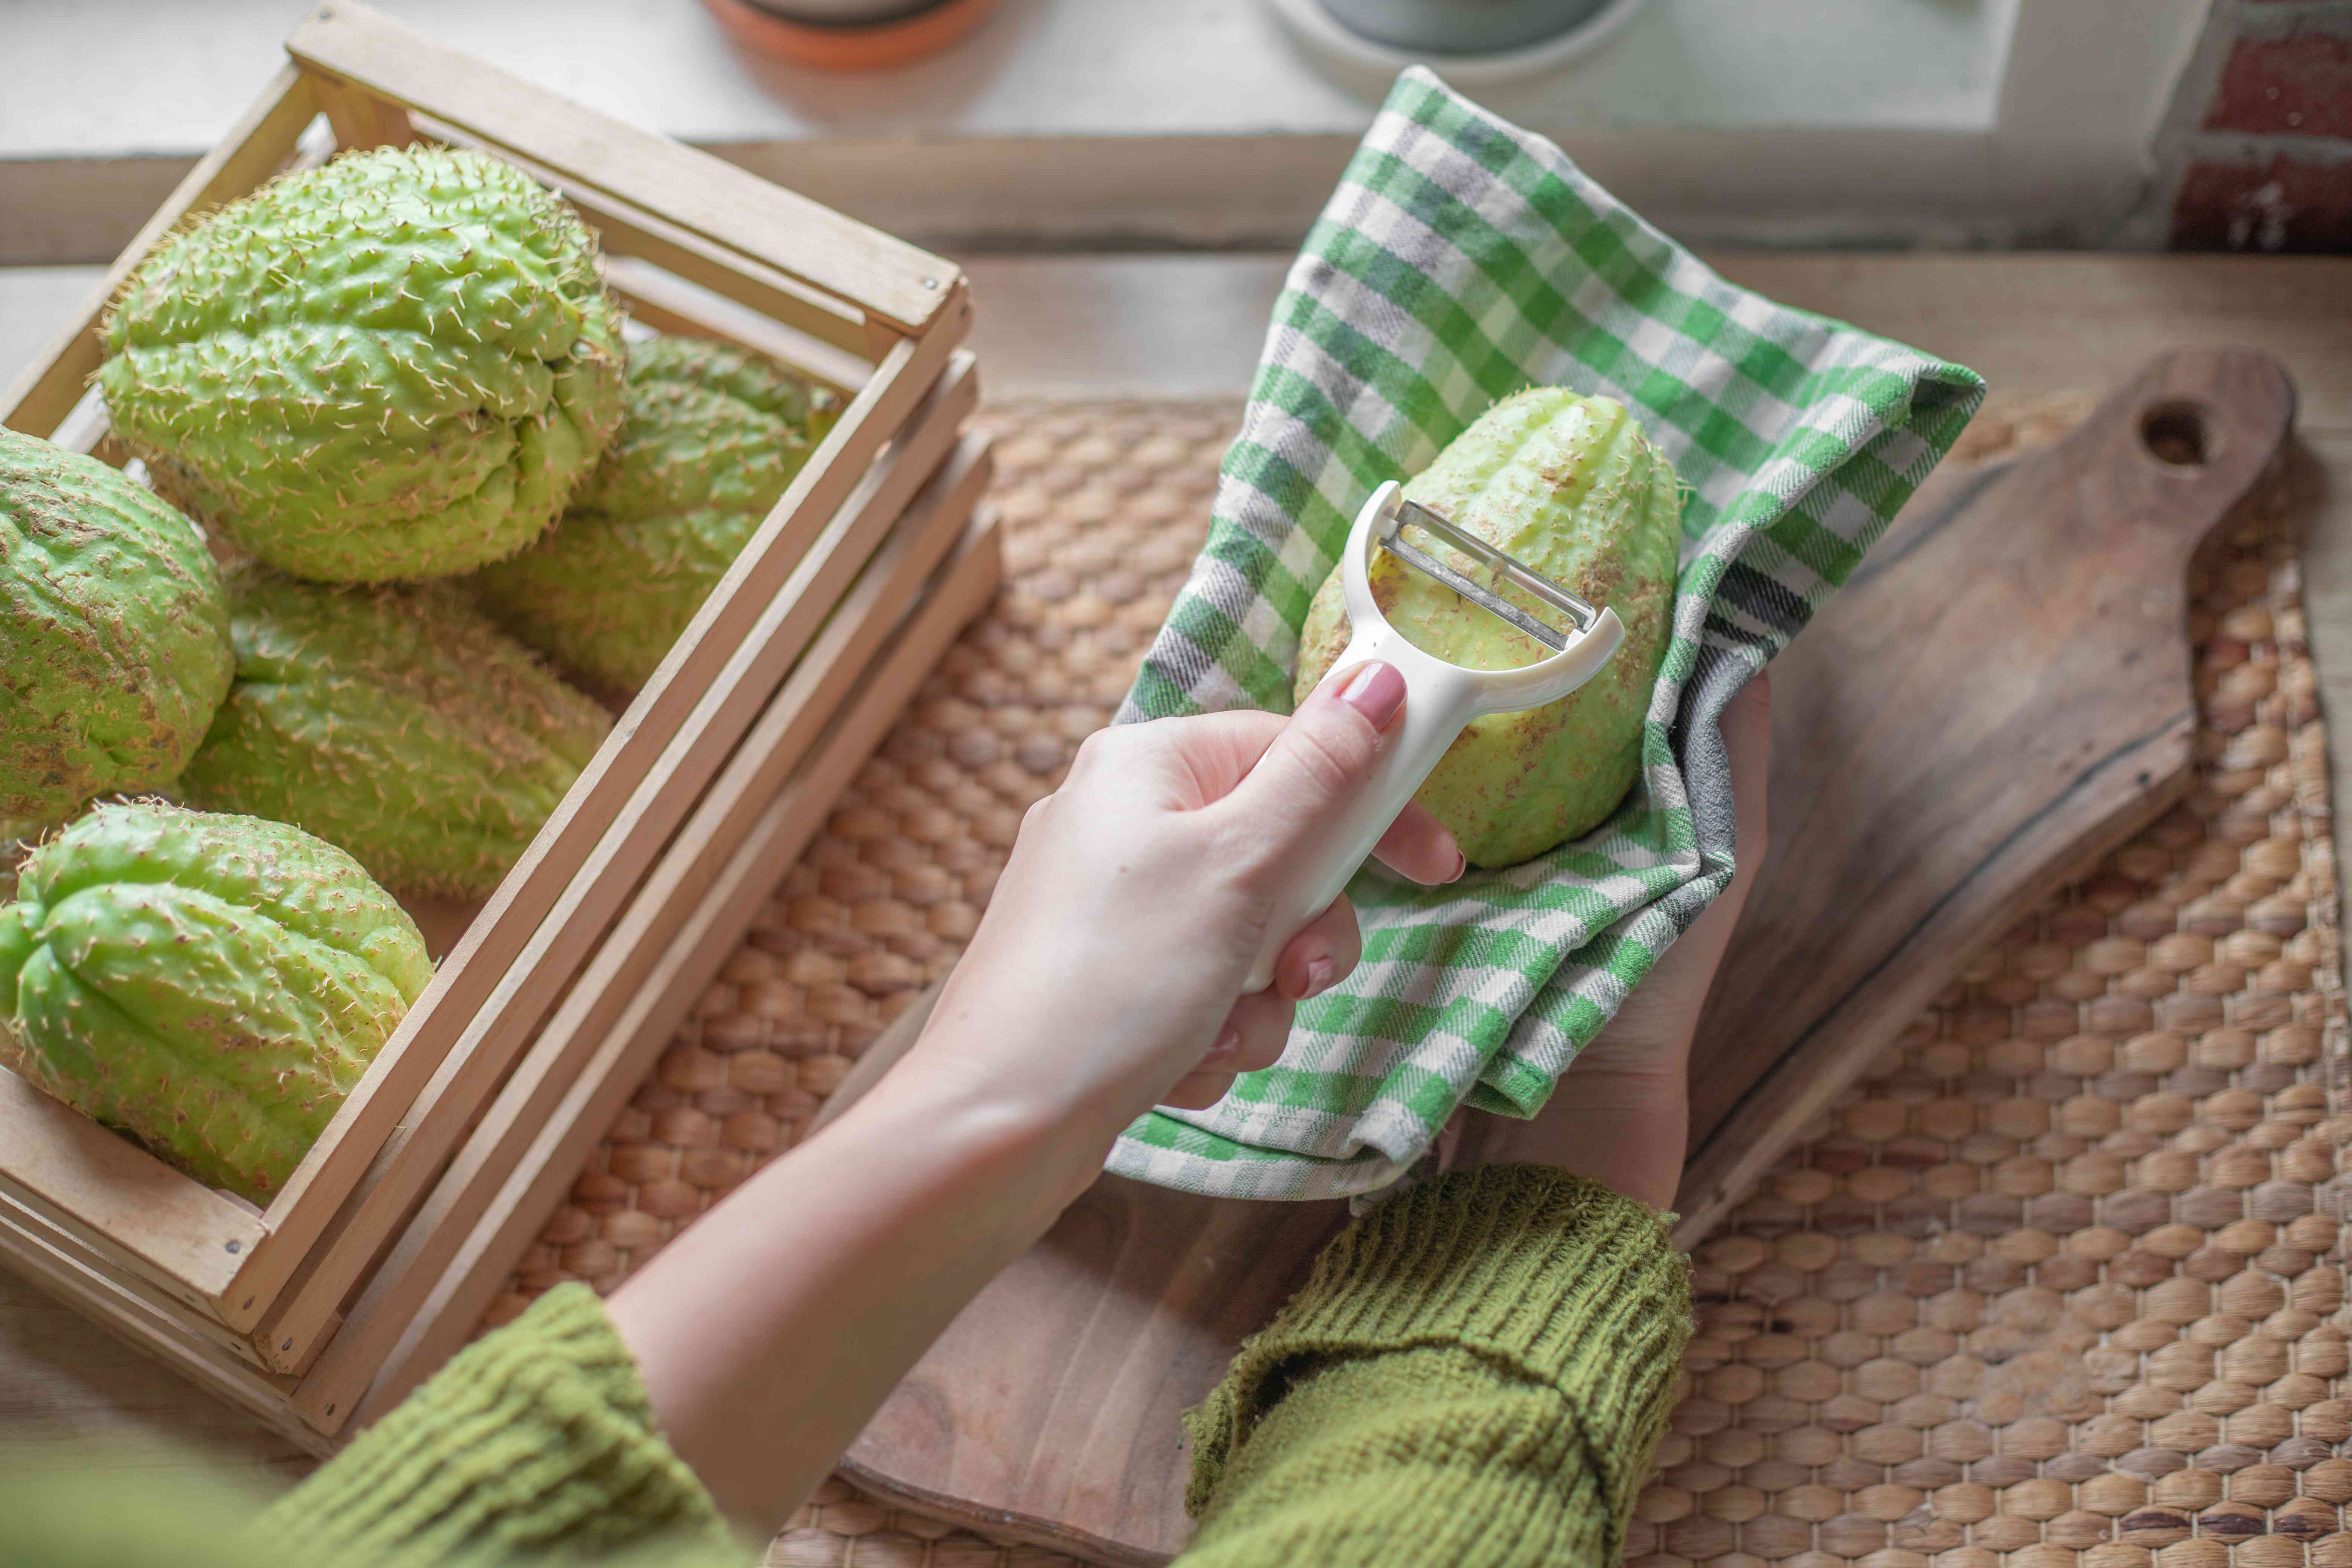 hand in green sweater peels a chayote